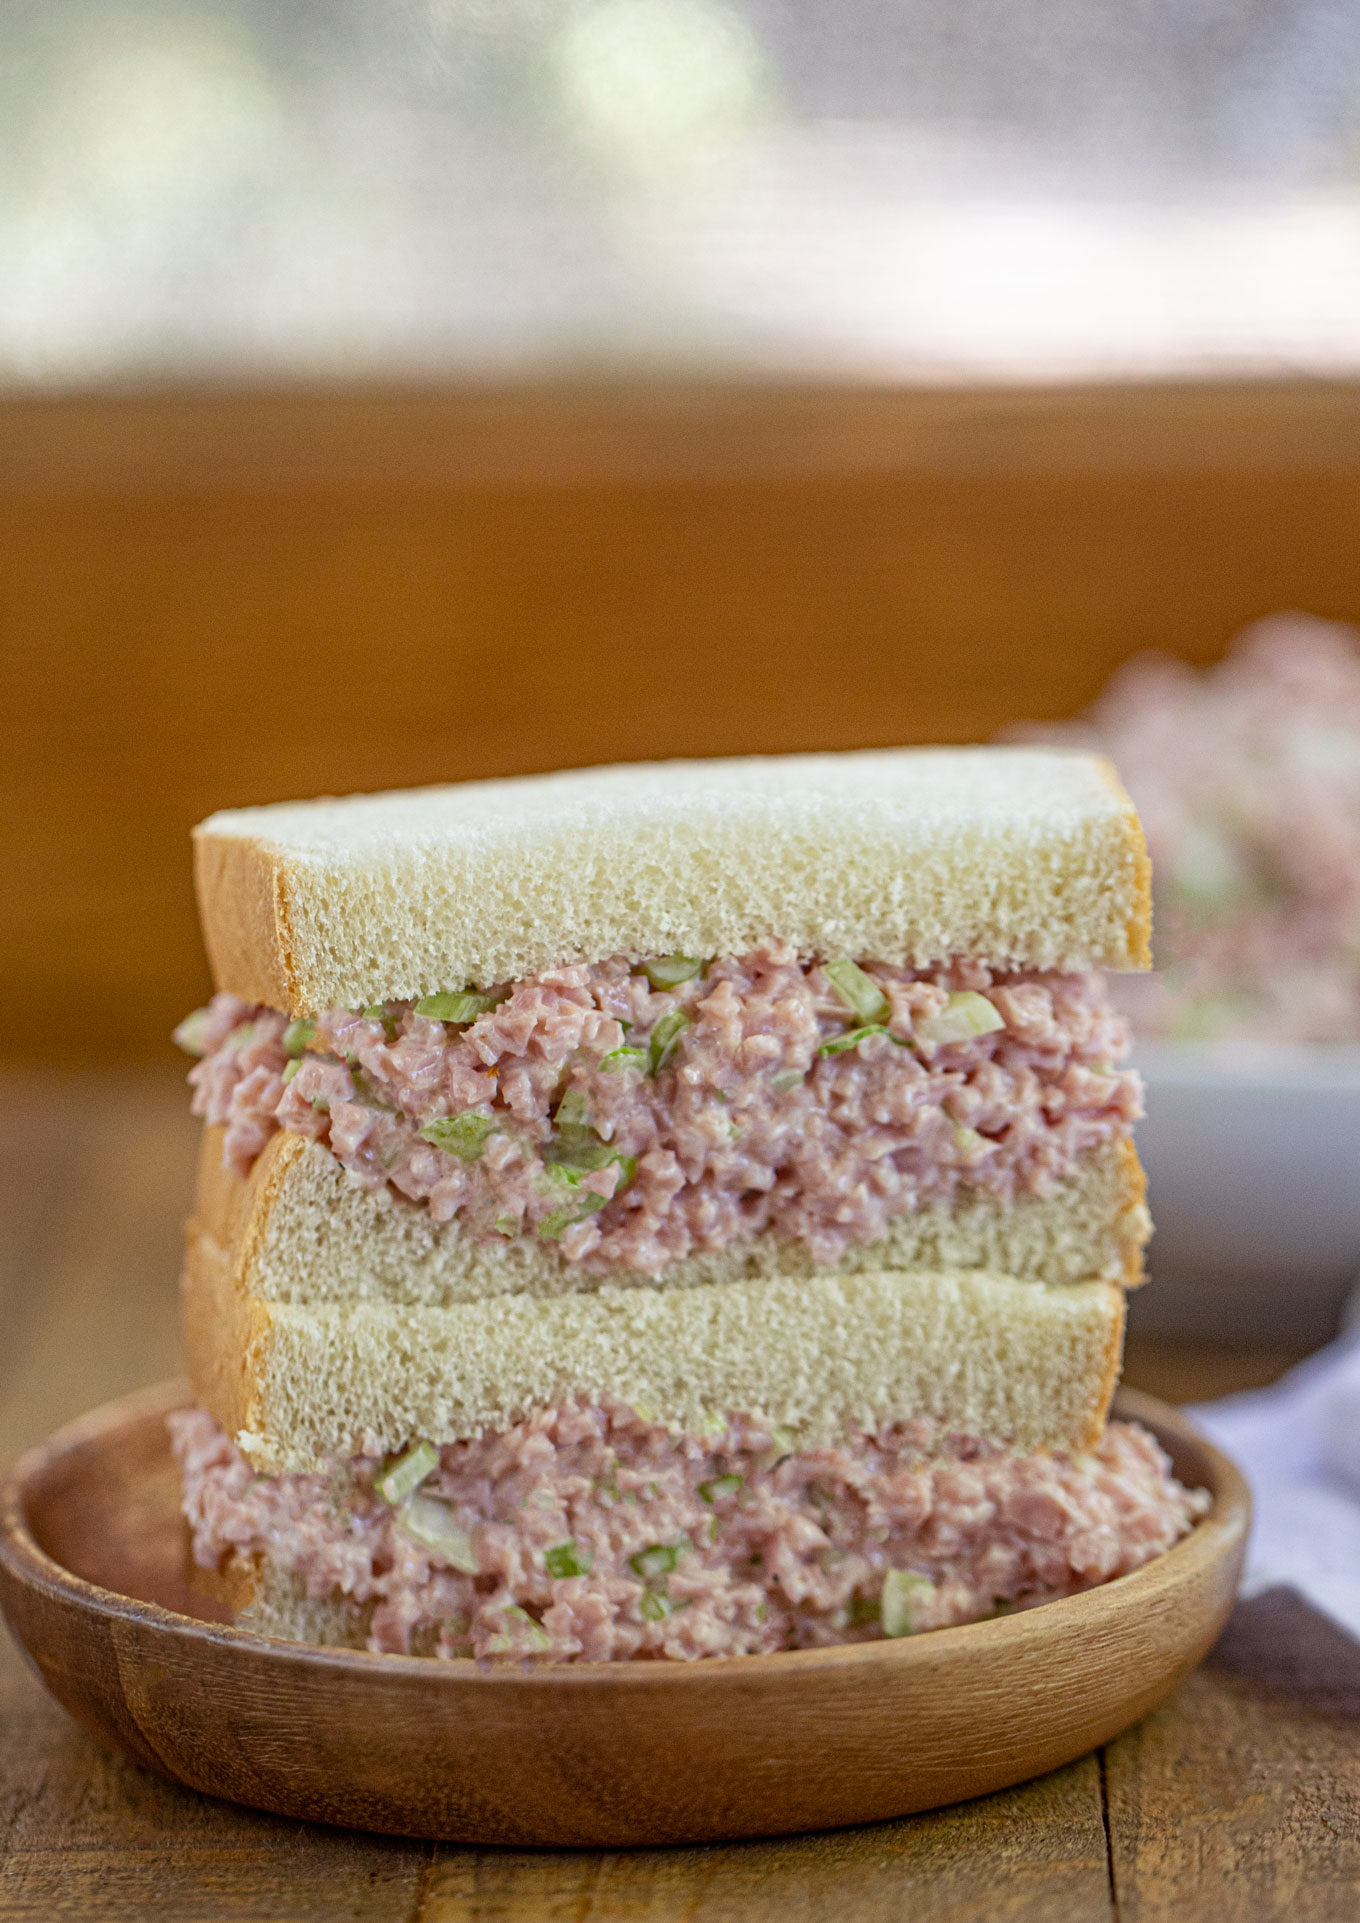 Ham Salad Sandwich with Texas Toast Bread on wooden plate